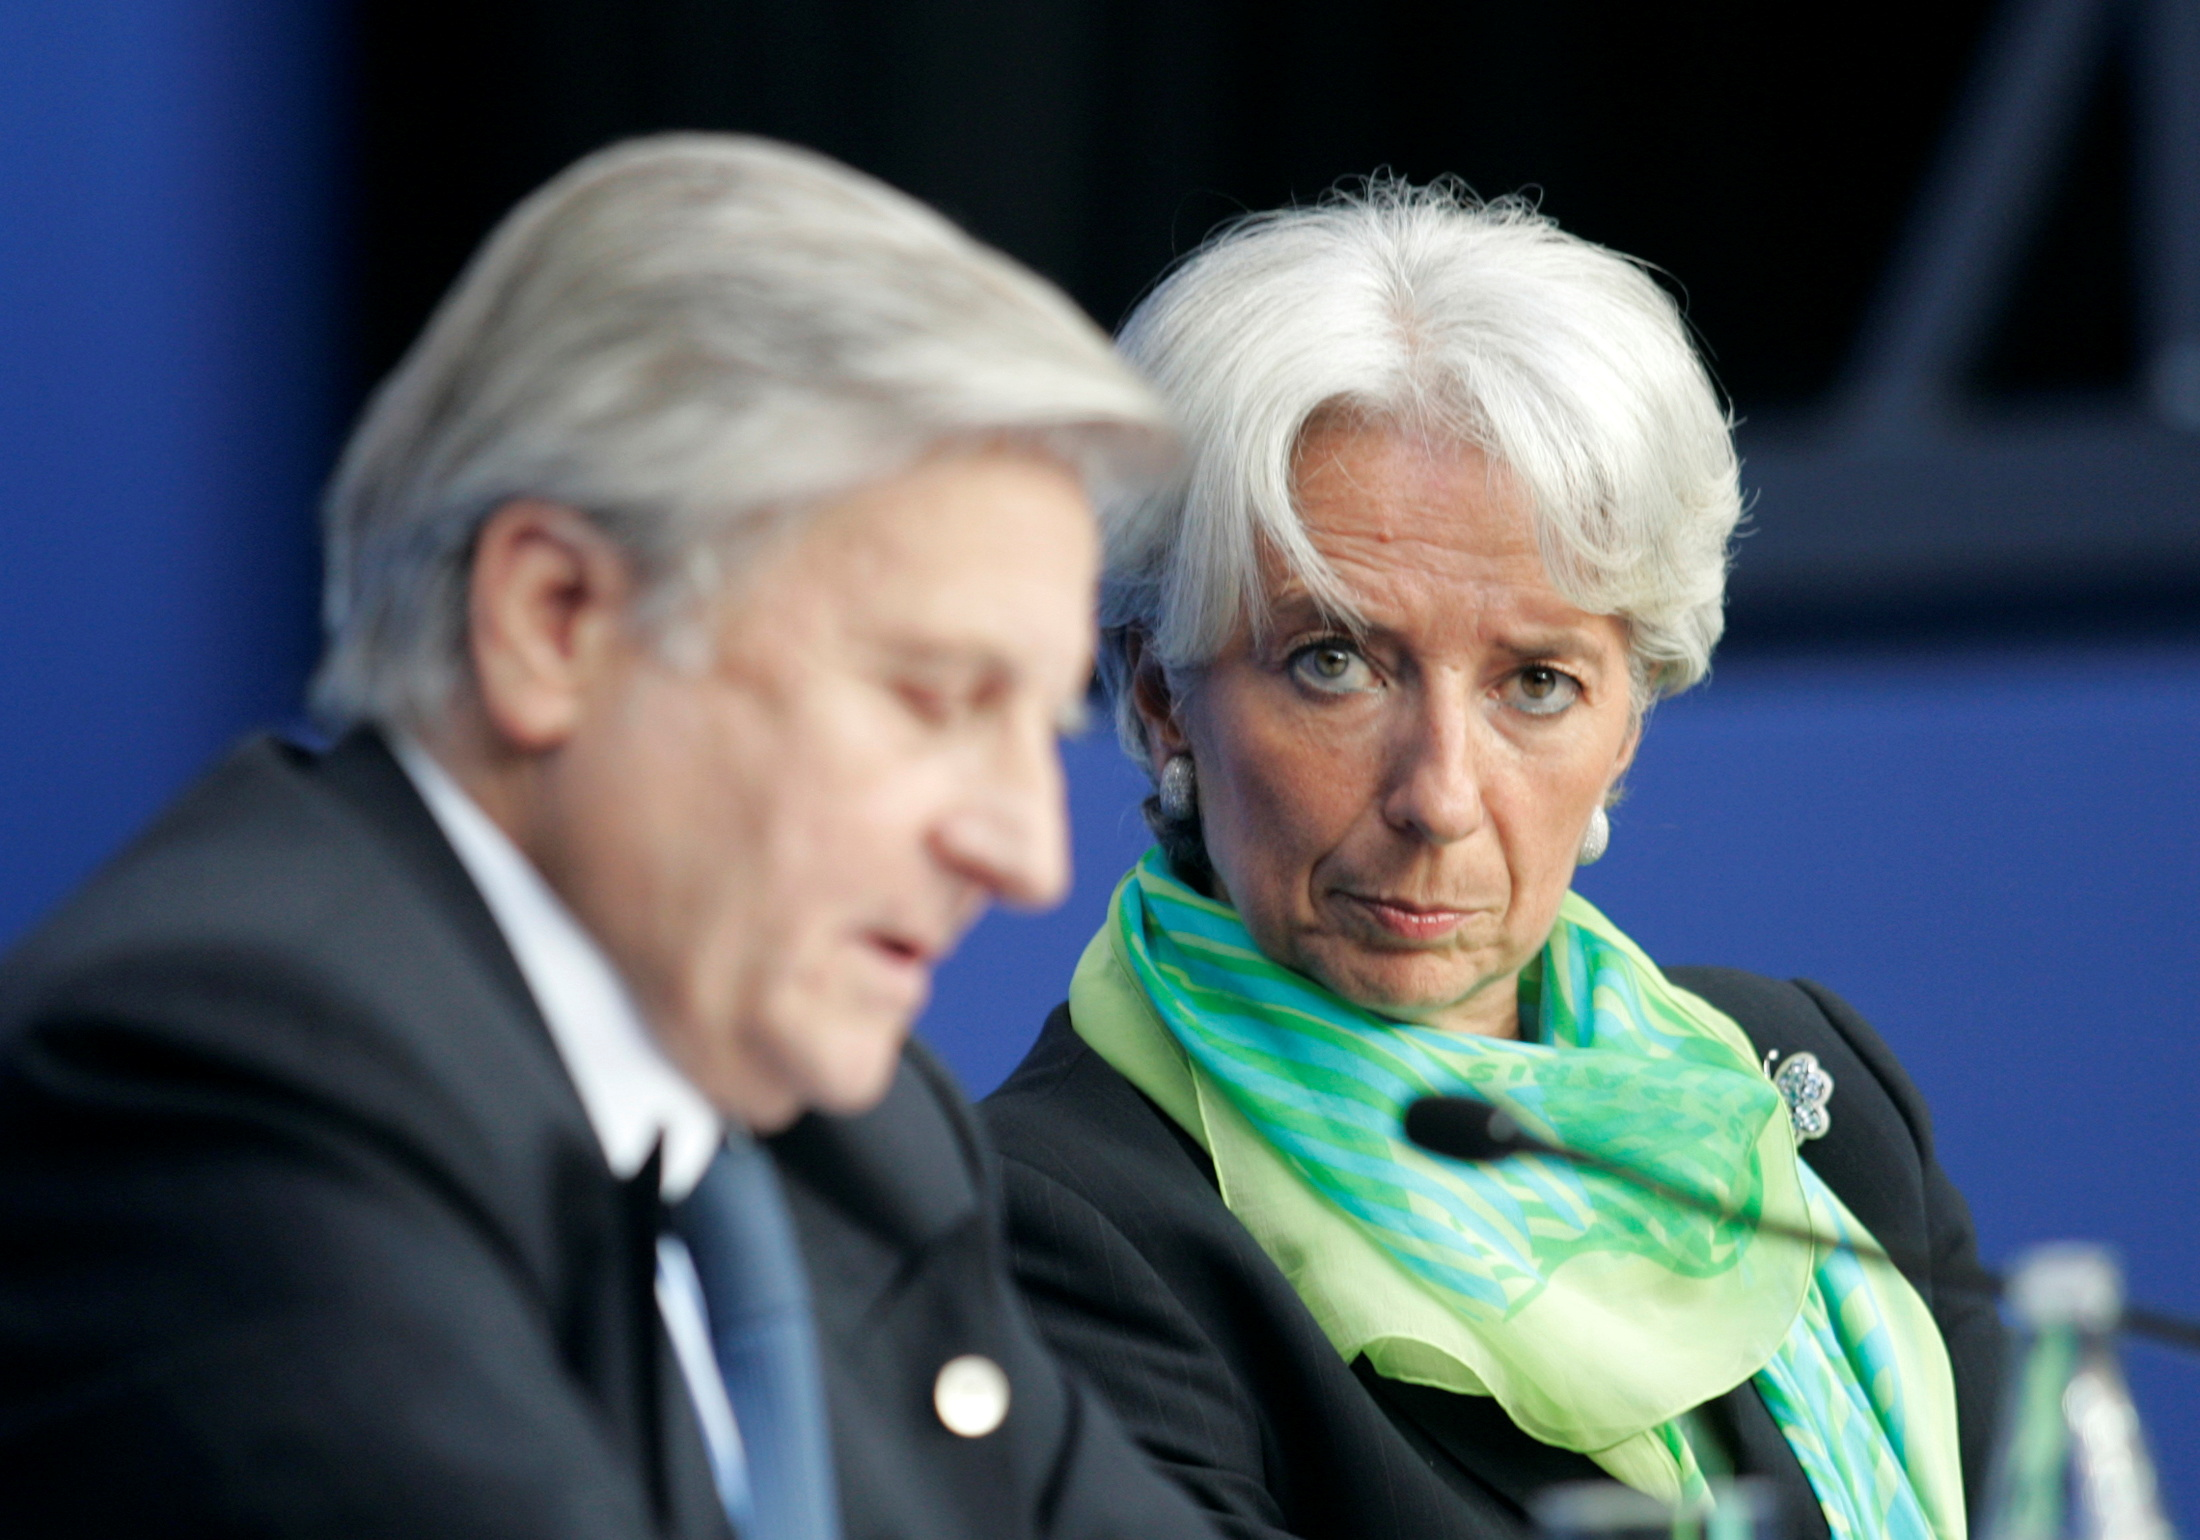 France's Finance Minister Christine Lagarde (R) and European Central Bank President Jean-Claude Trichet attend a news conference after a Euro zone finance ministers and central bankers Eurofi conference in Nice, southern France, September 13, 2008. REUTERS/Pascal Deschamps